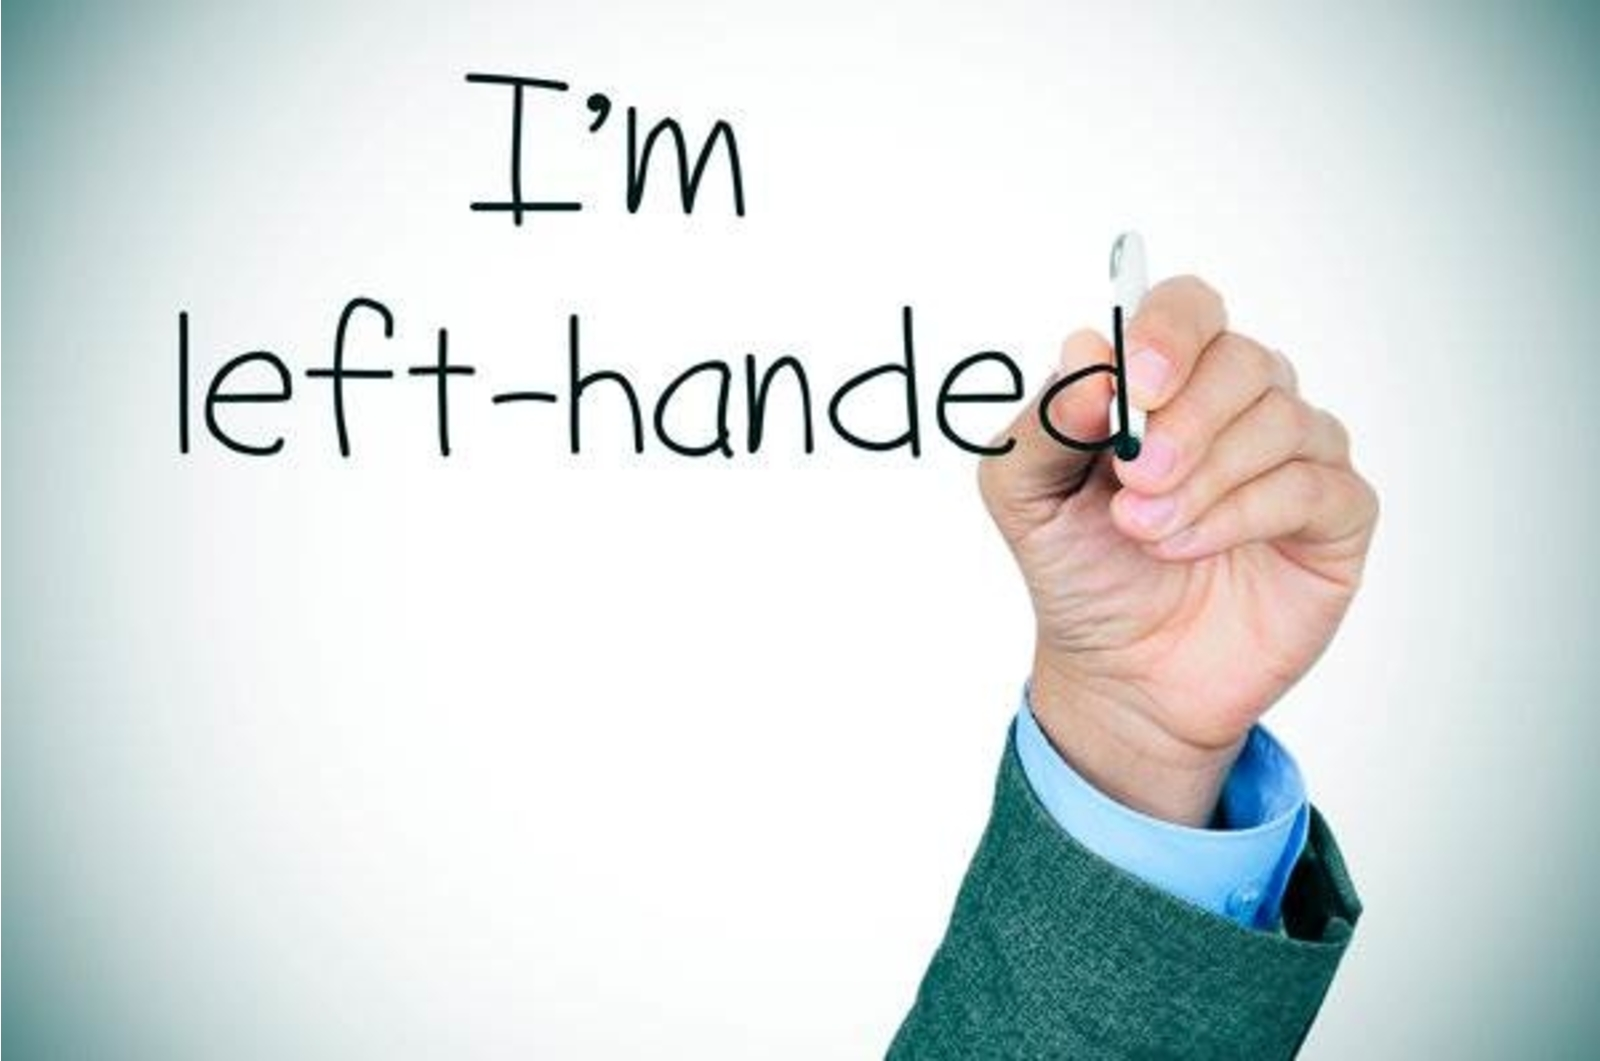 lefty lefties